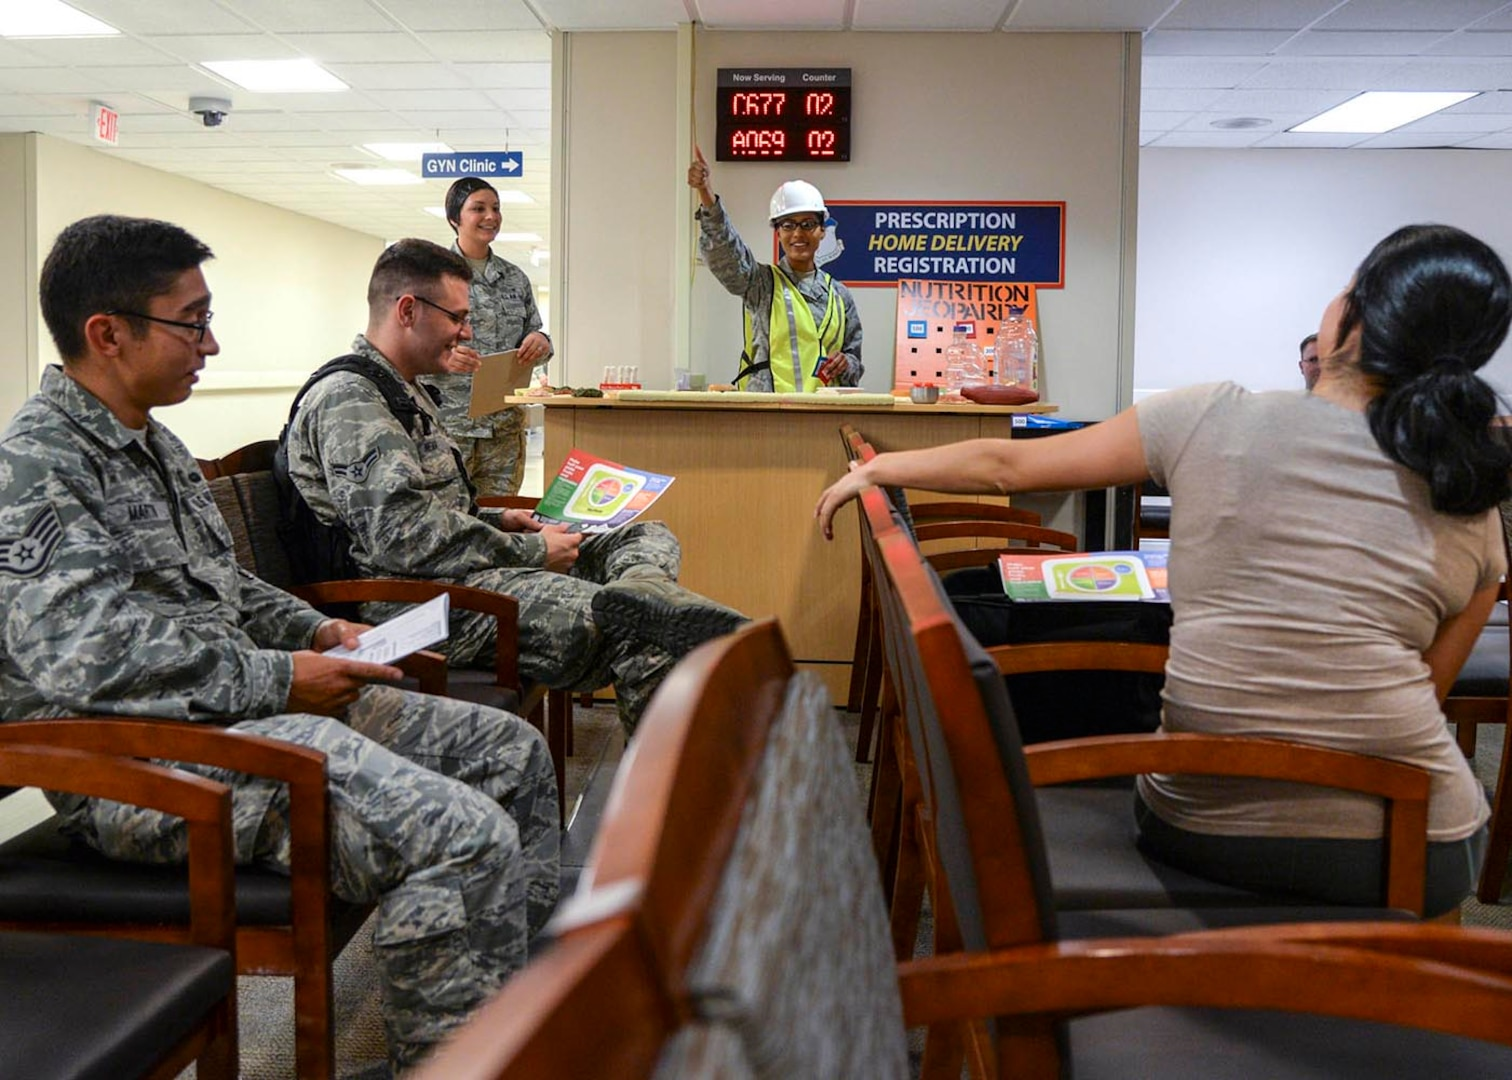 U.S. Air Force Senior Airman Catherine Scholar, 59th Medical Diagnostics and Therapeutics Squadron diet therapy journeyman, congratulates Airmen for answering correctly during a nutrition jeopardy game recently at the Wilford Hall Ambulatory Surgical Center, Joint Base San Antonio-Lackland, Texas. The event helped patients pass the time while waiting for their prescriptions, and provided them with nutritional information on foods we eat every day. (U.S. Air Force photo/Staff Sgt. Kevin Iinuma)